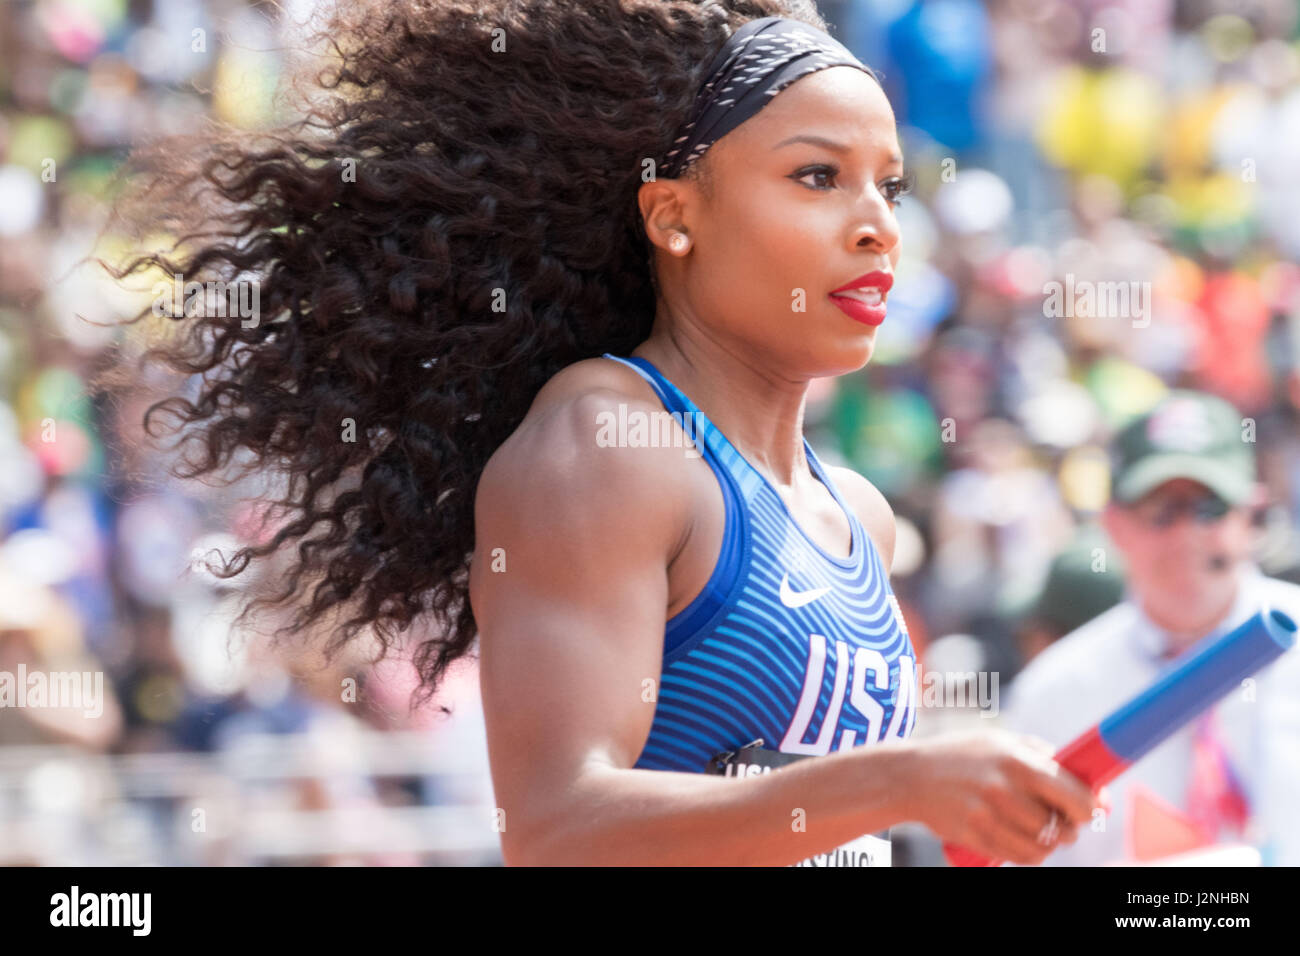 Philadelphia, Pennsylvania, USA. 29th Apr, 2017. NATASHA HASTINGS, of Team USA and competing in the USA vs the World - Stock Image